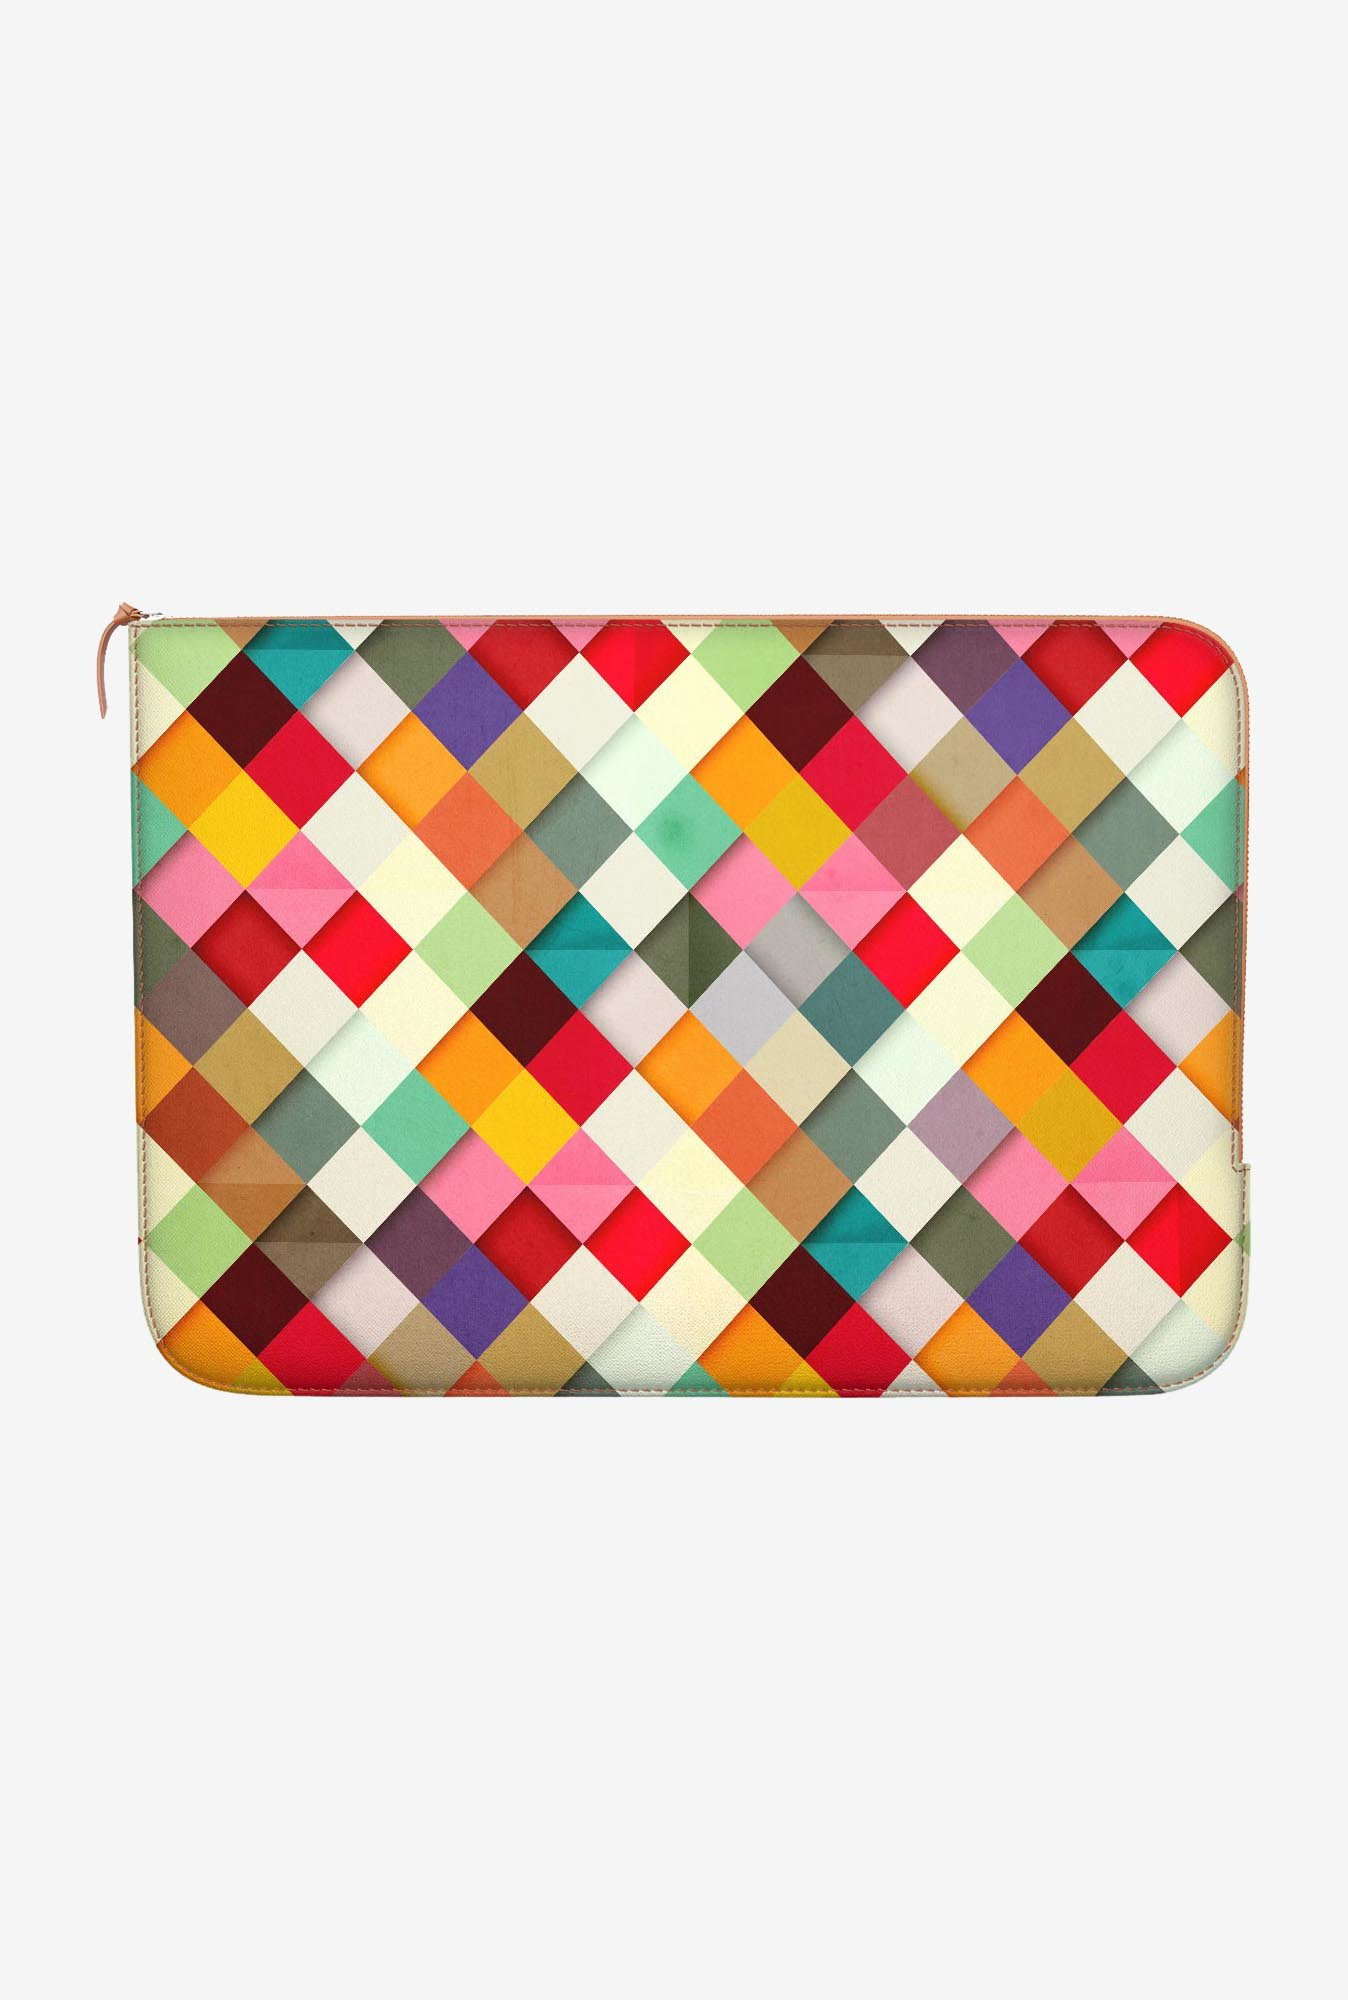 DailyObjects Pass this On MacBook Air 11 Zippered Sleeve